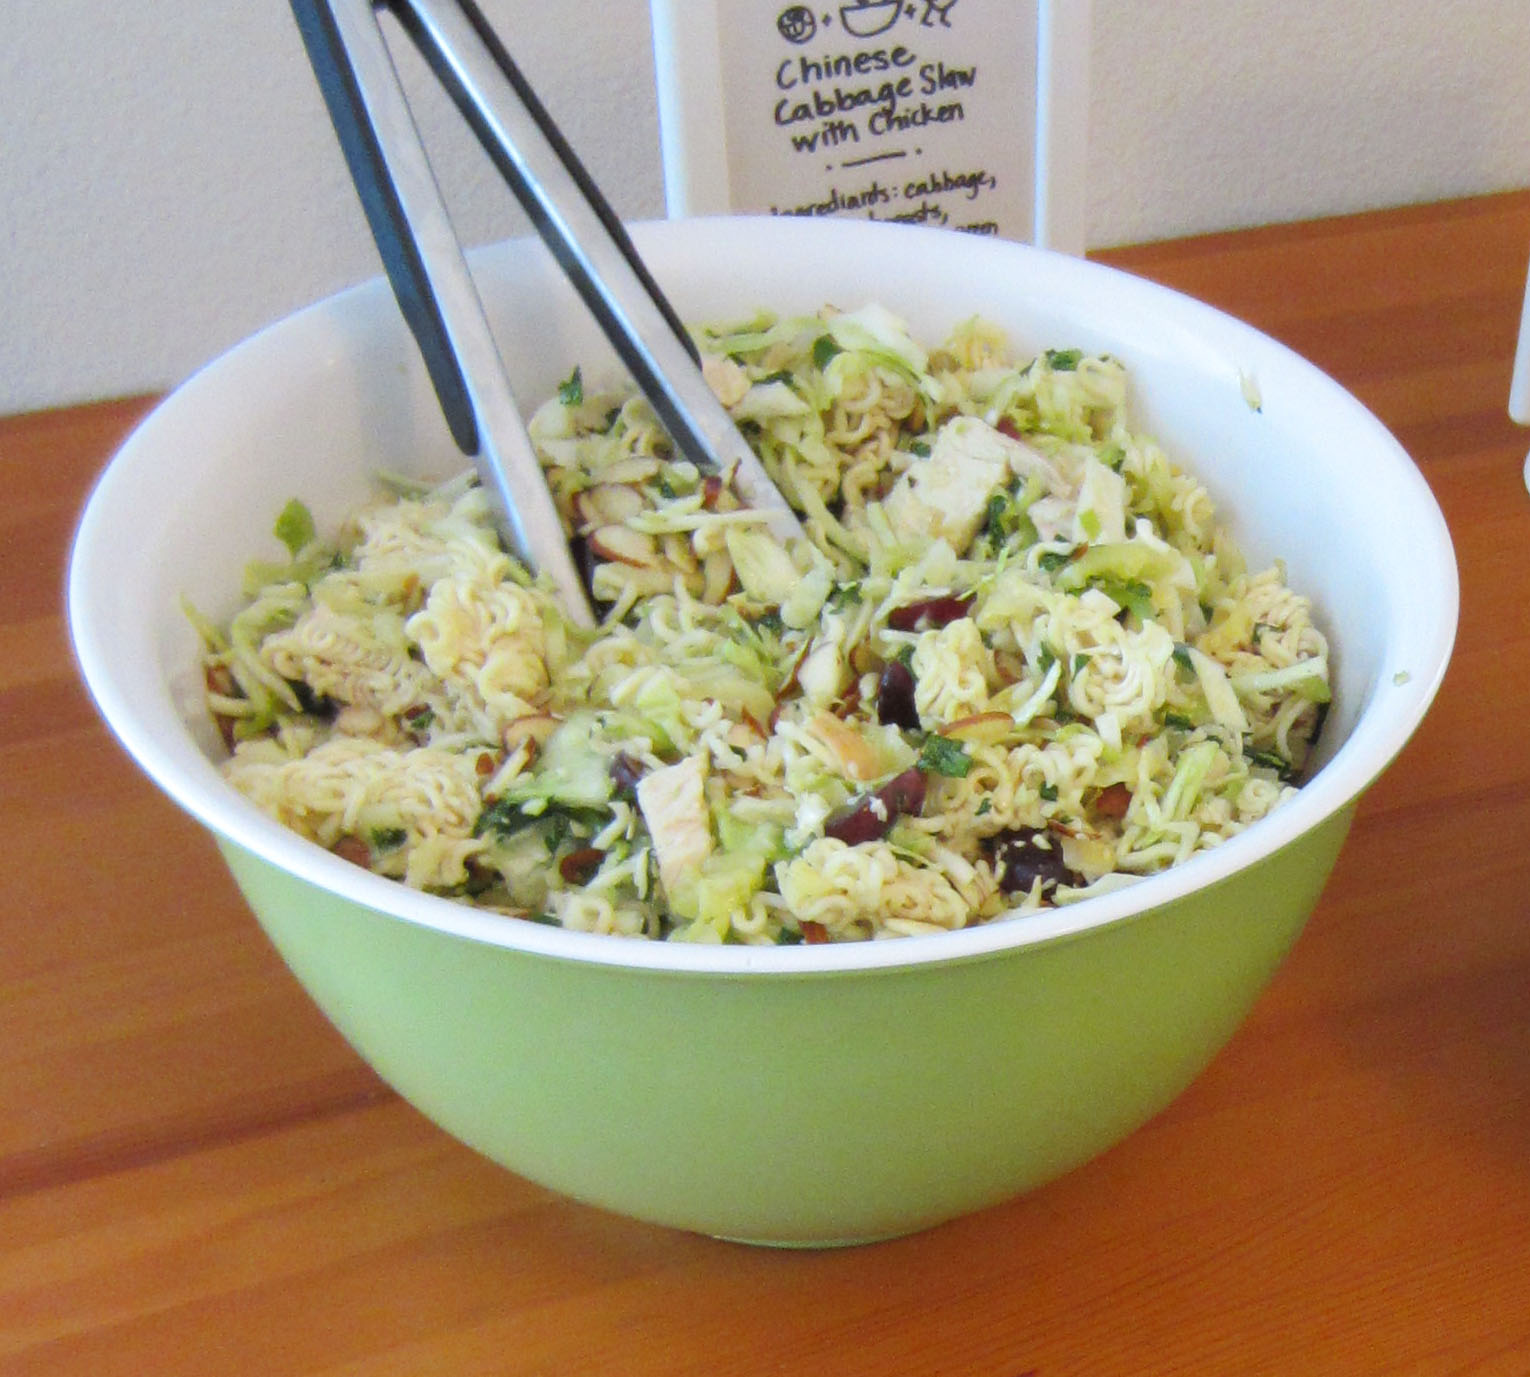 ... of green cabbage medium size finely shredded about 4 cups 2 cup cooked